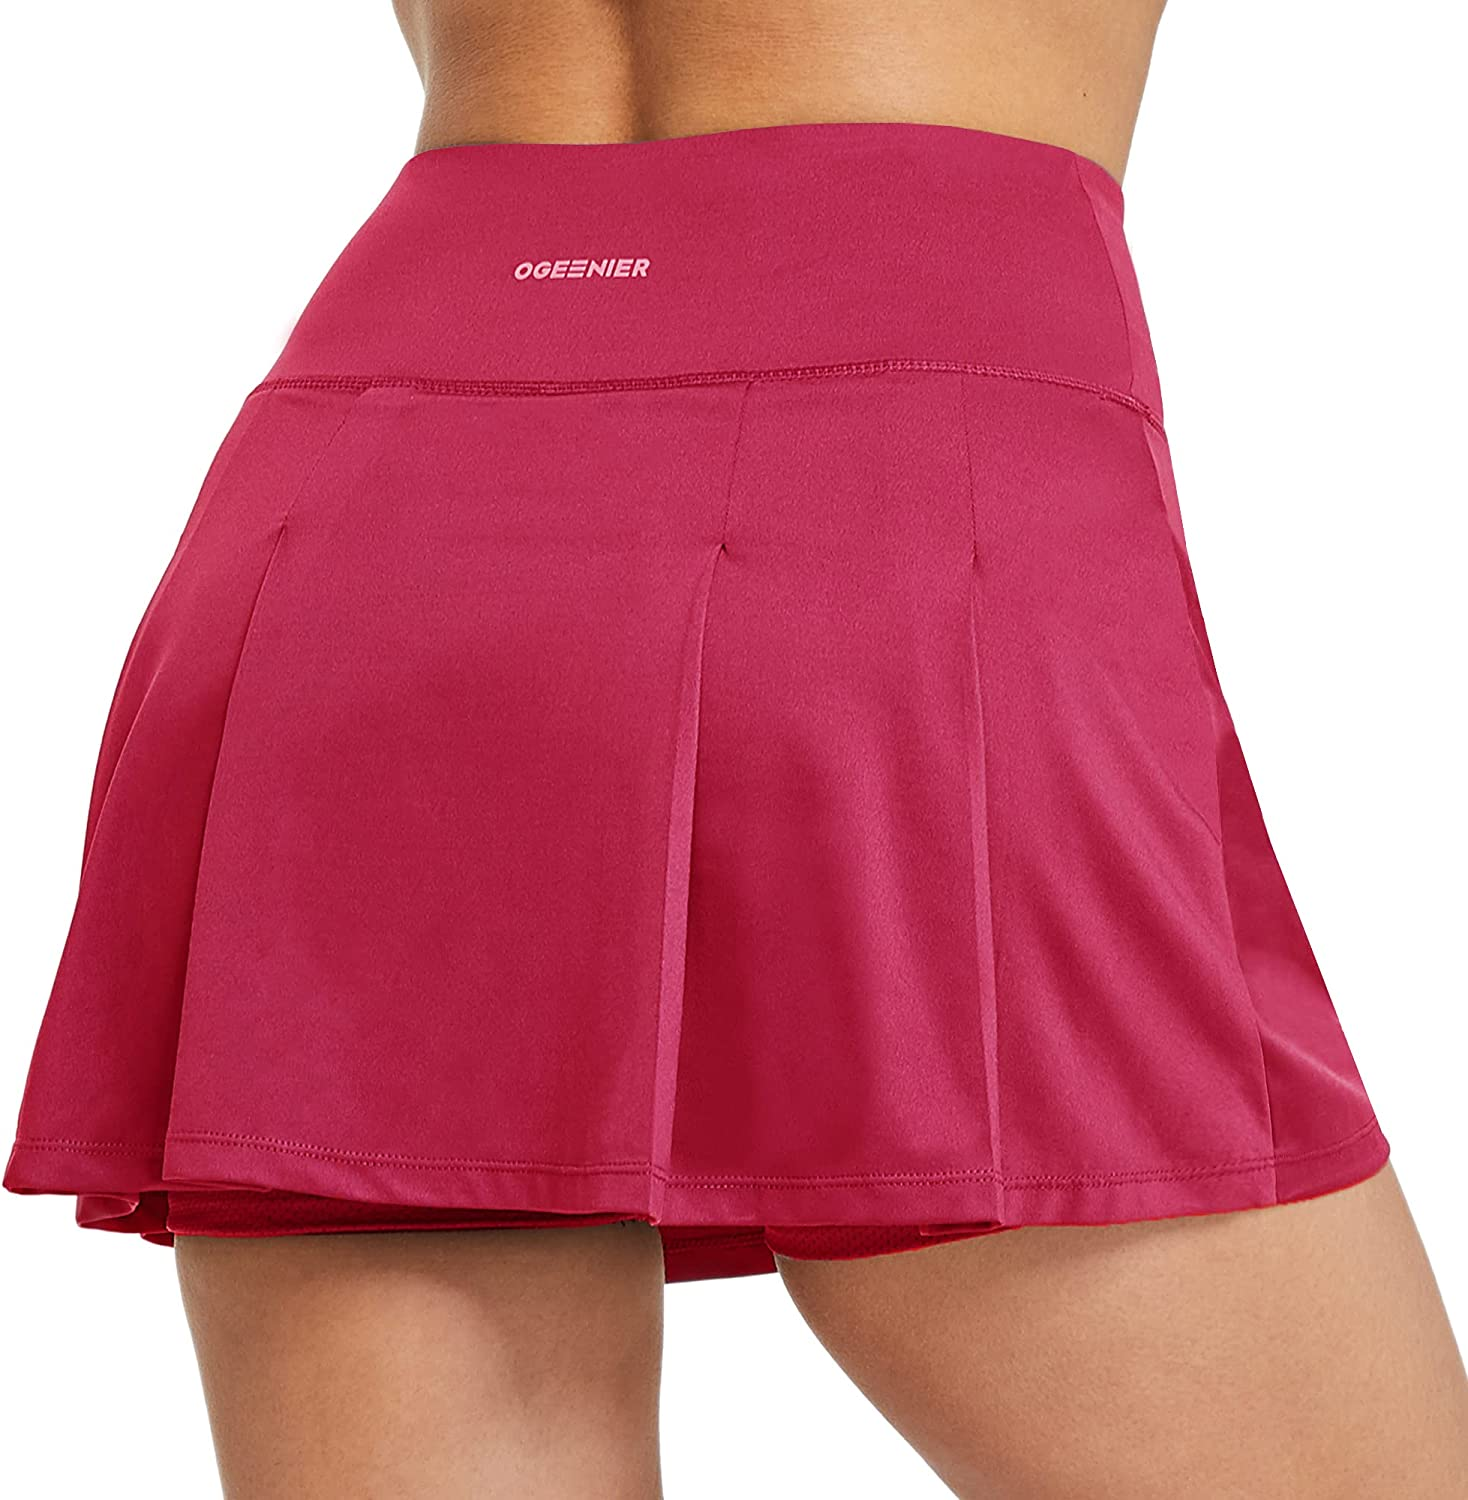 OGEENIER Max 53% OFF Women's Tennis Gorgeous Skirts with Mini Shorts Athletic Pleated